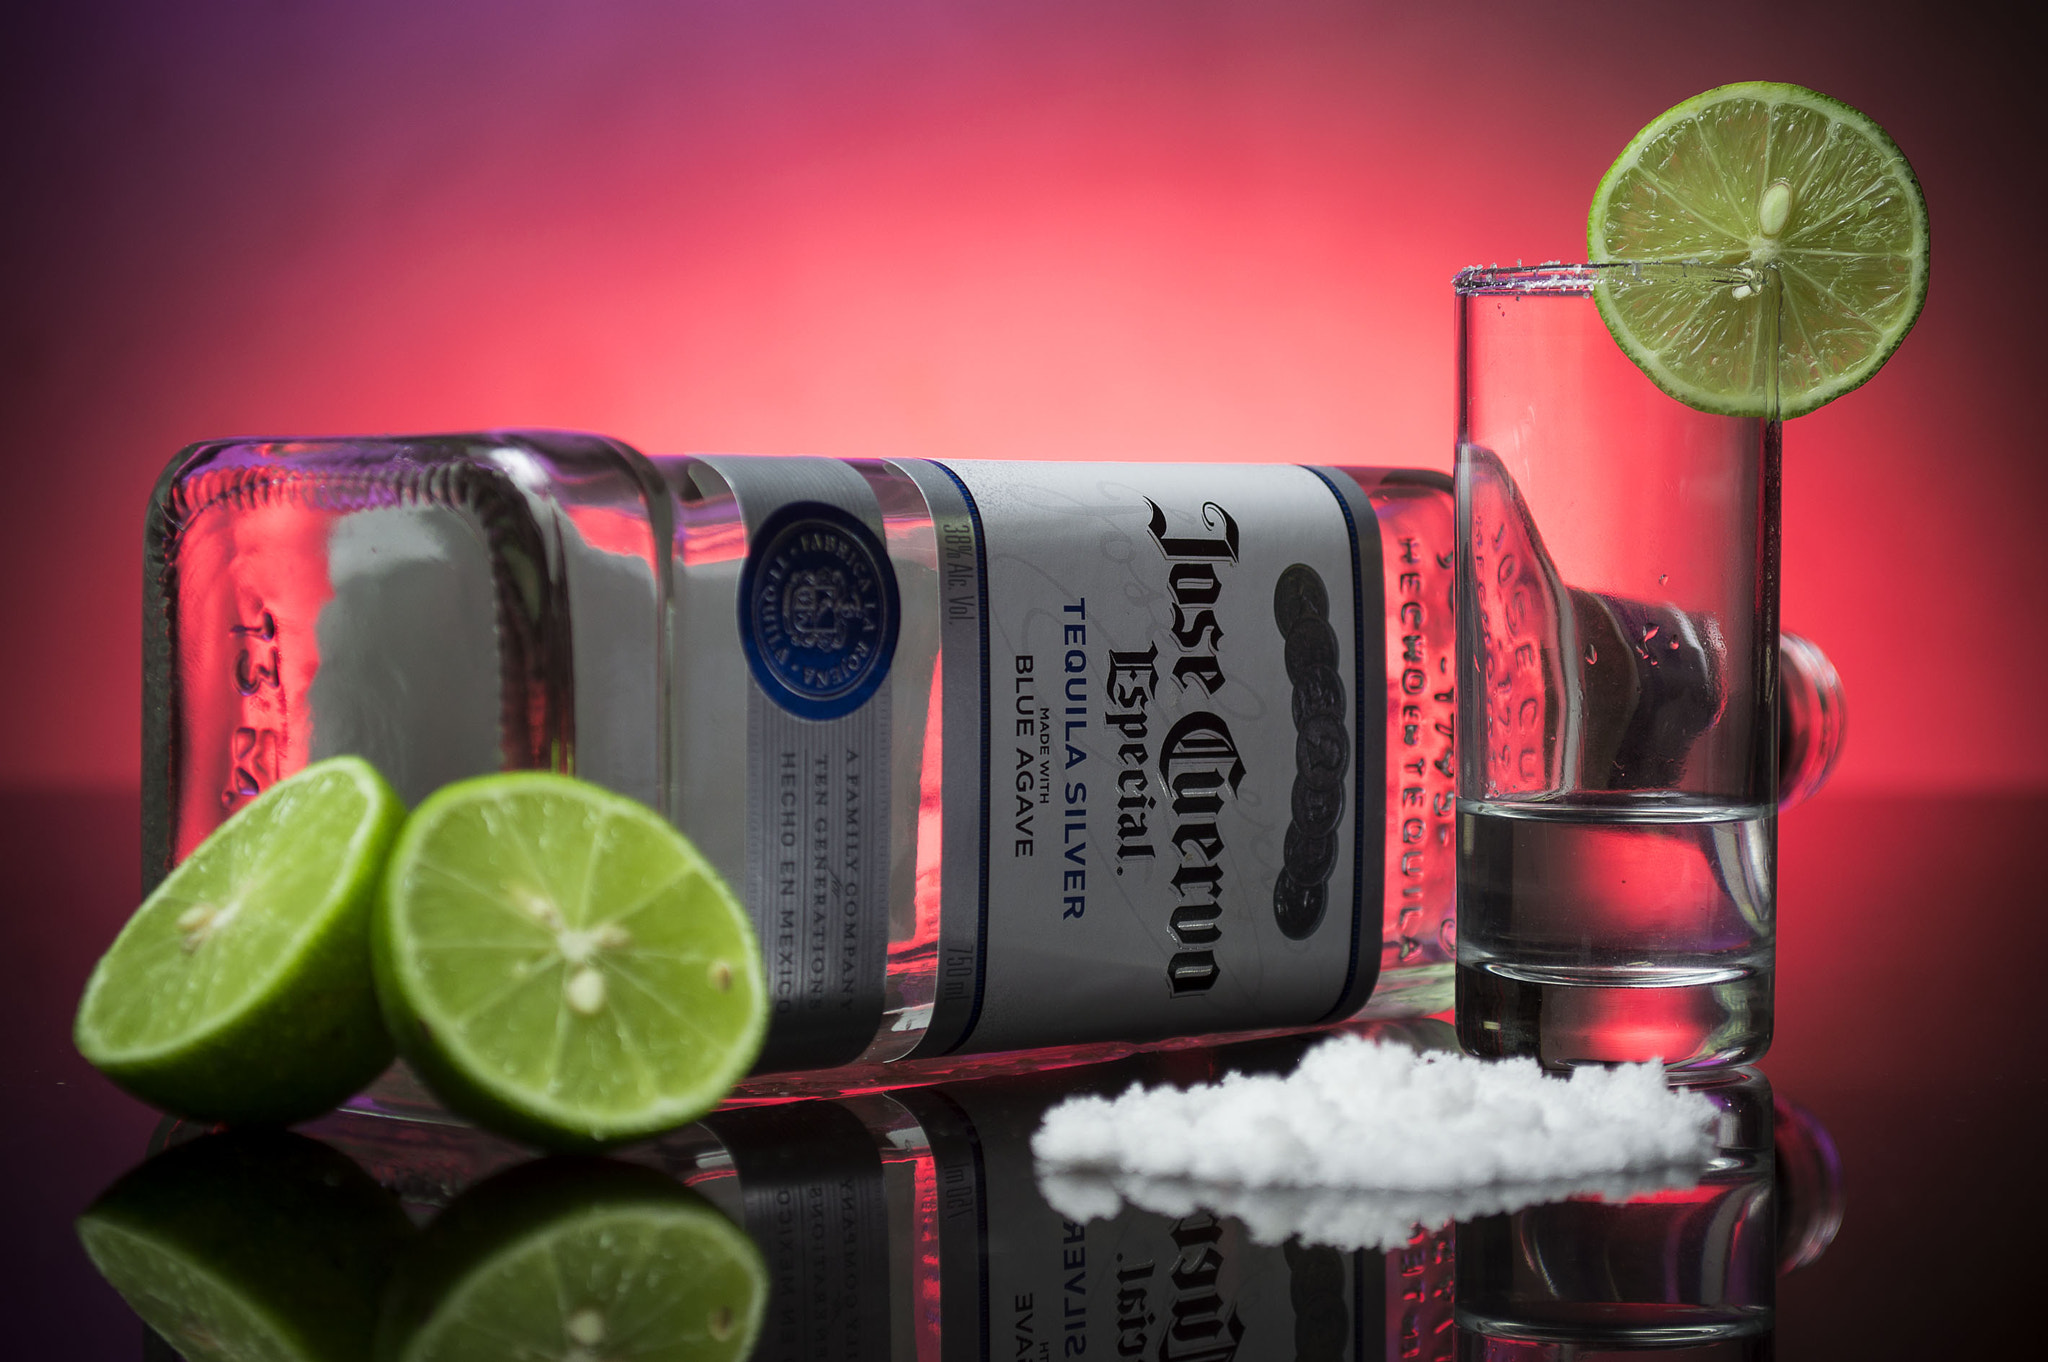 Photograph Tequila José Cuervo by Schubert Castro on 500px